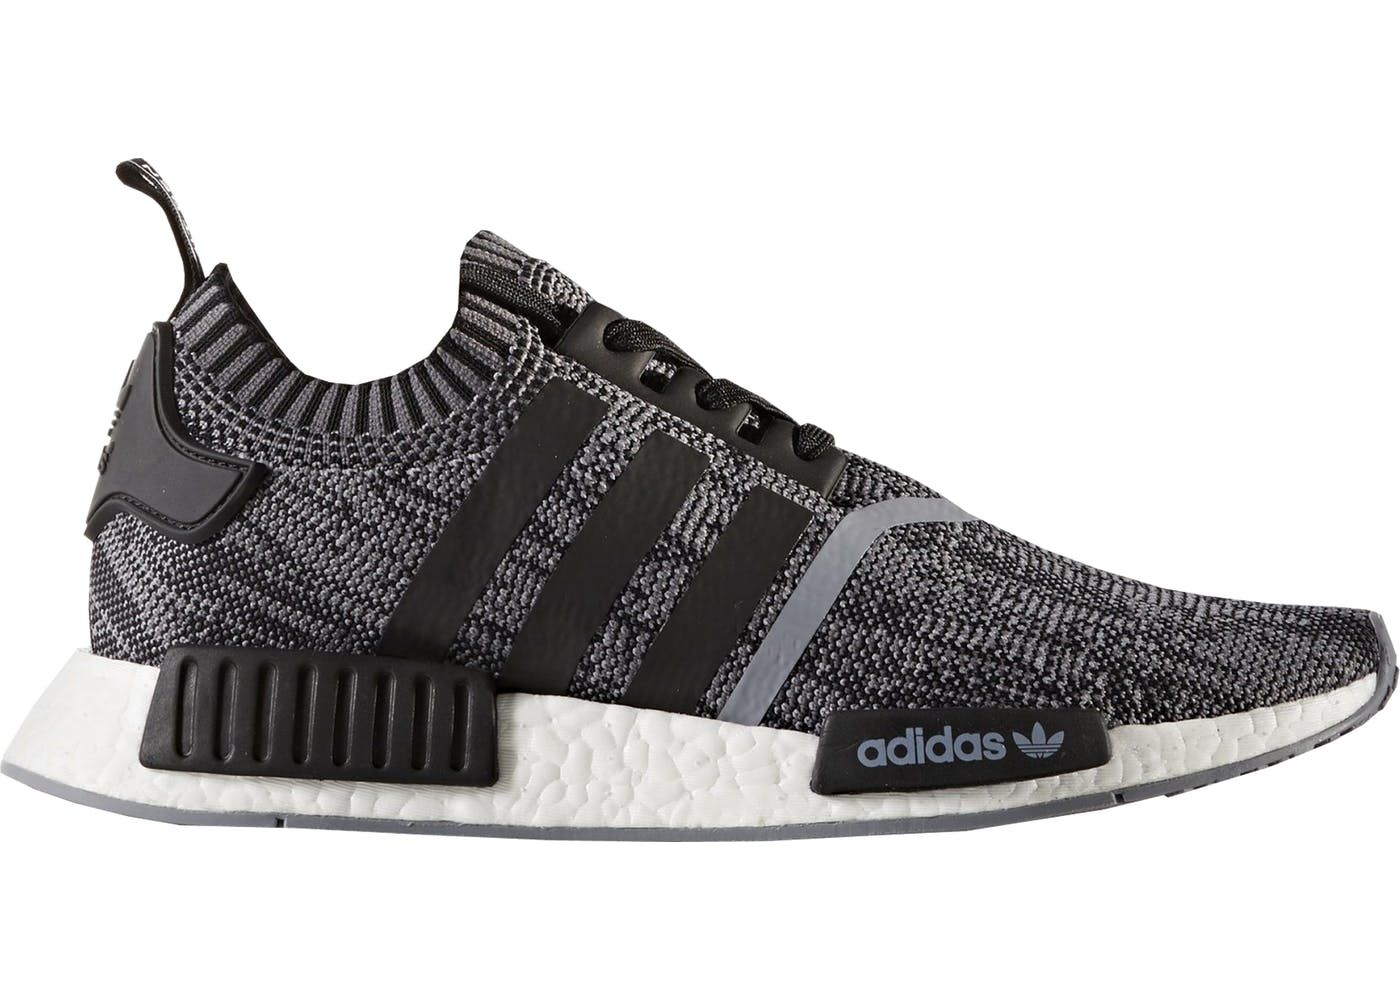 Adidas Nmd R1 Ai Camo Black White In 2020 Adidas Shoes Women Adidas Shoes Outlet Nike Free Shoes